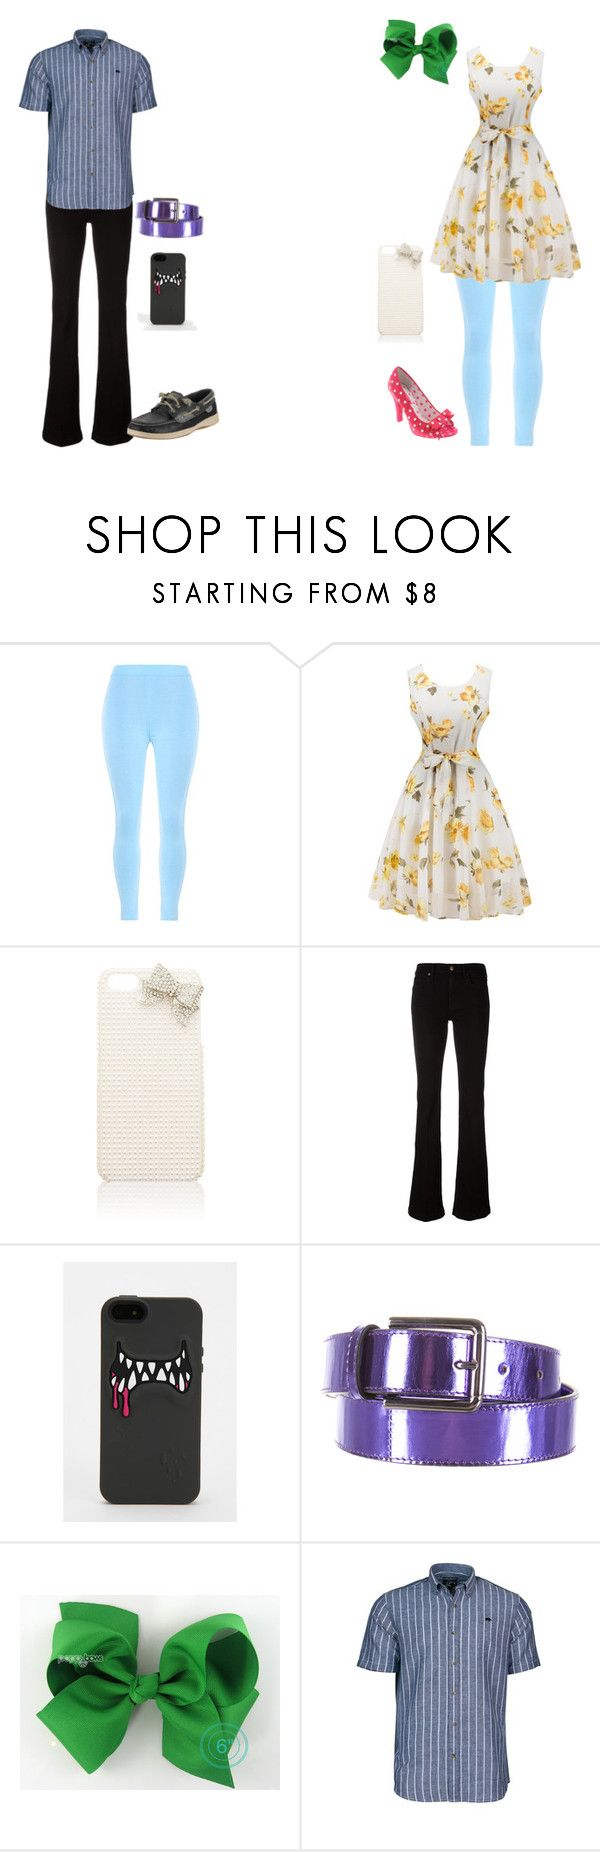 """""""Girly Girl vs Tomboy: Signature outfits (sequel)"""" by sierra-ivy on Polyvore featuring WithChic, Forever New, 7 For All Mankind, Ports 1961, Raging Bull and Sperry"""